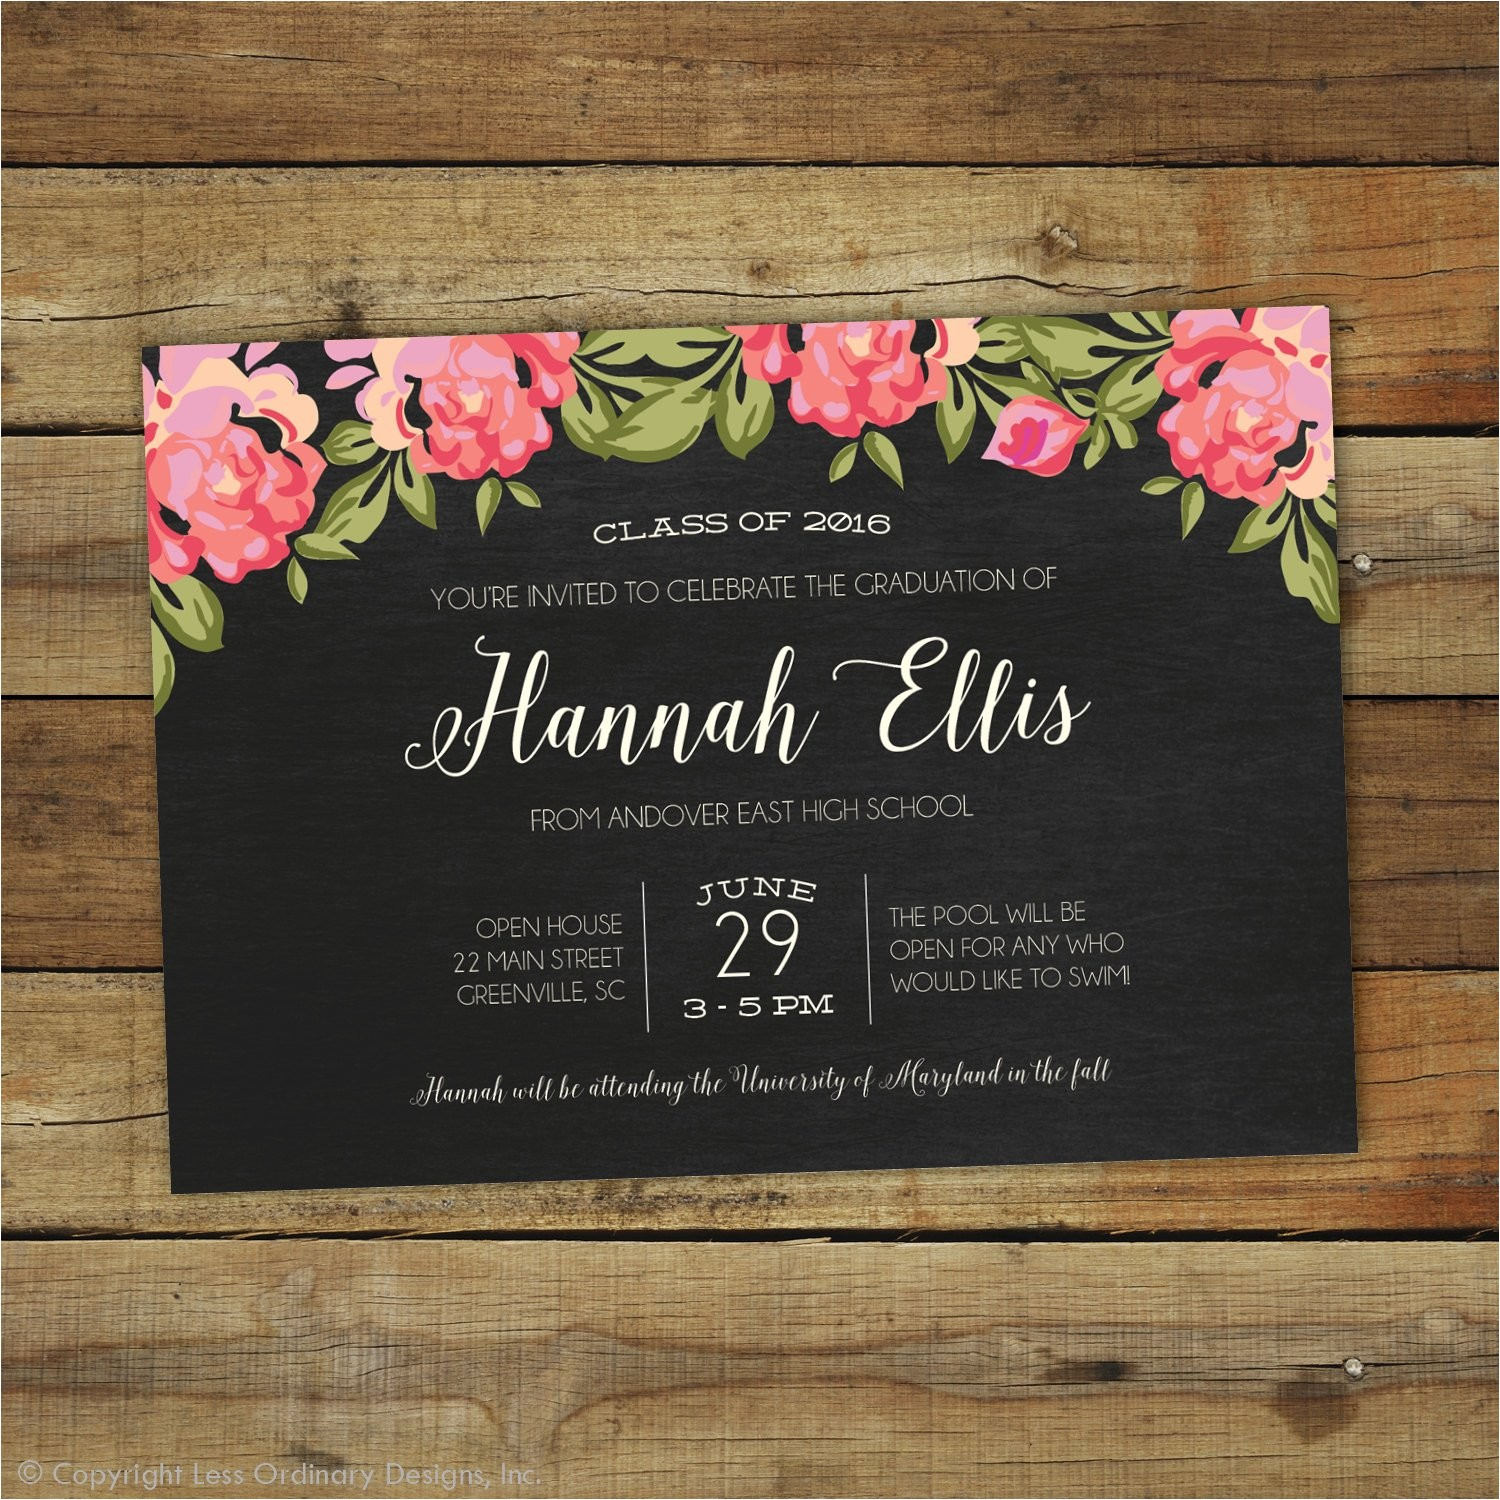 2017 graduation party invitation floral